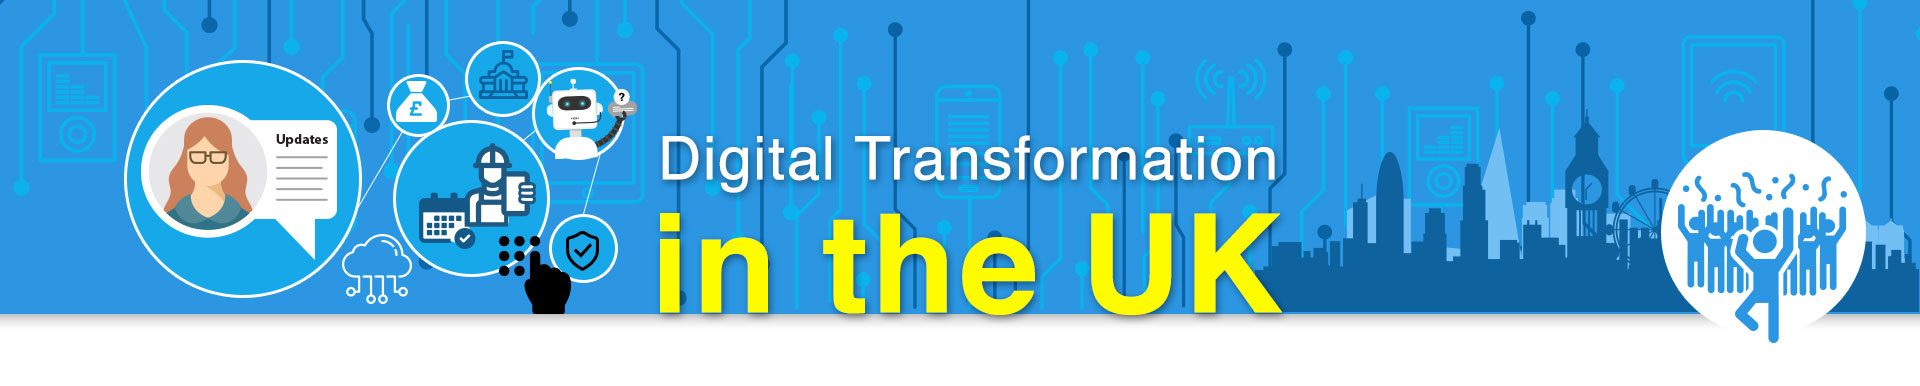 Digital-Transformation-in-the-UK